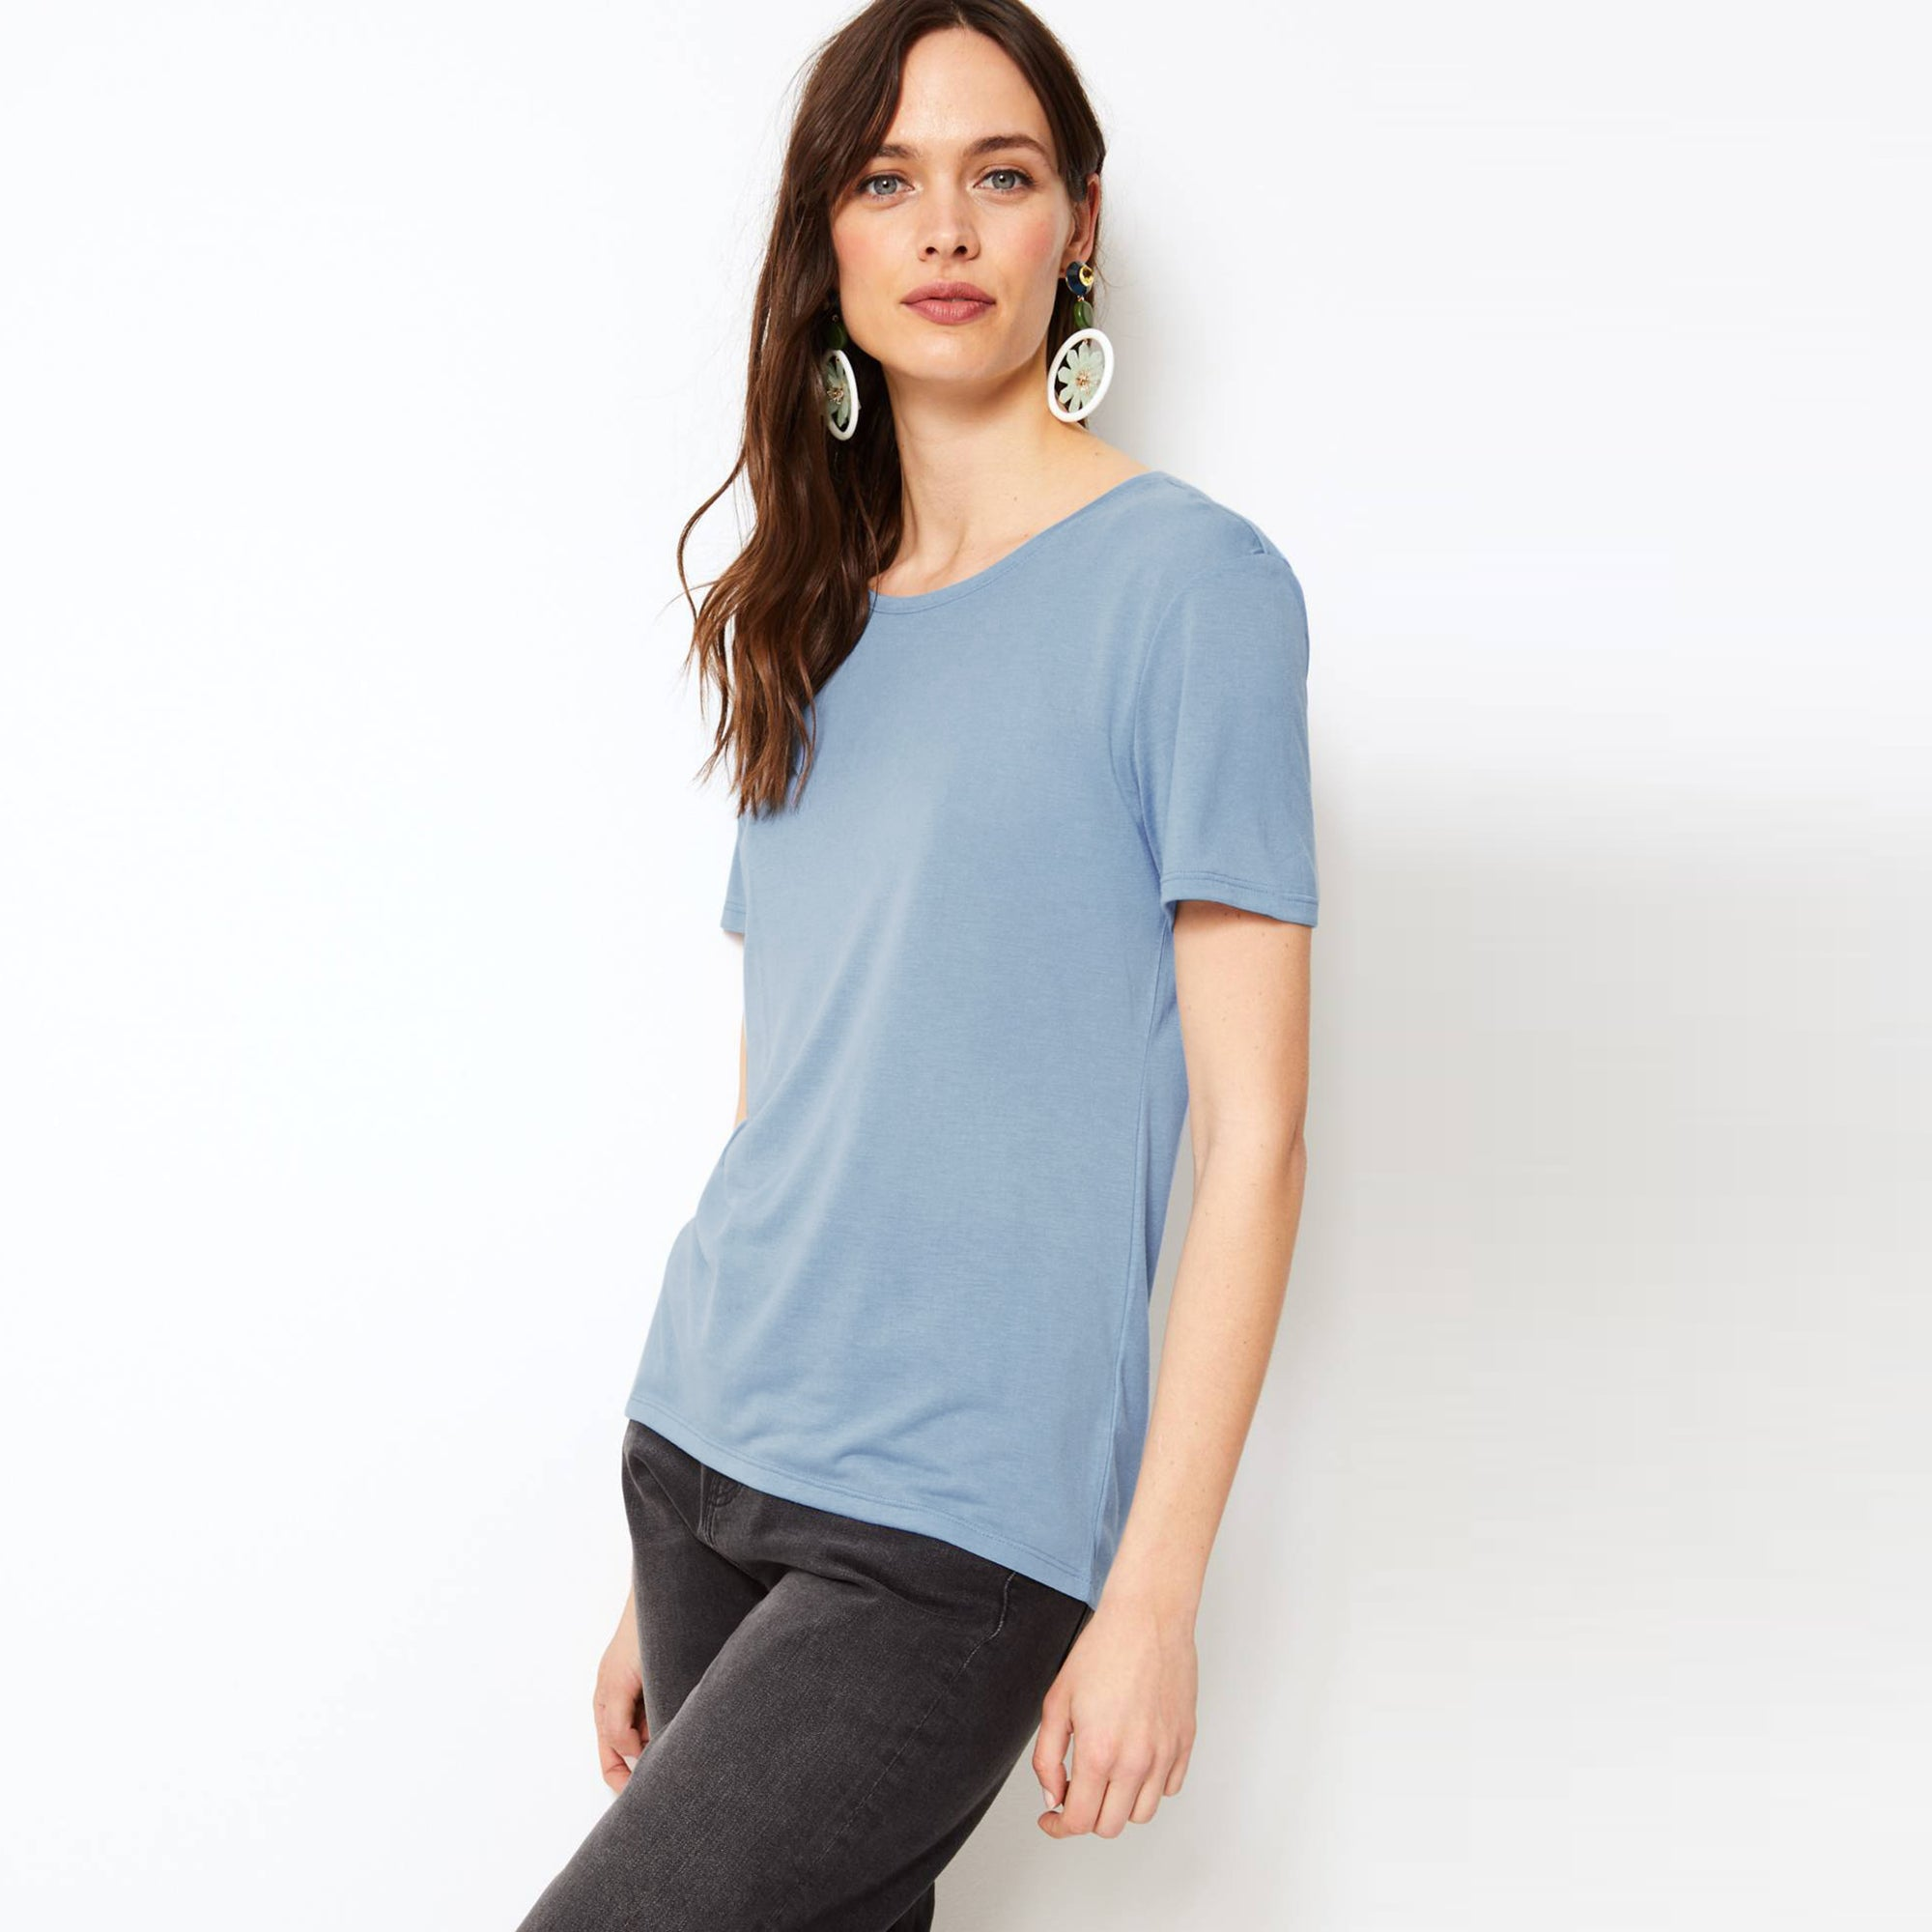 88507b37 Zara Cut Label Half Sleeve Stylish Viscose Tee Shirt For Women-BE8506